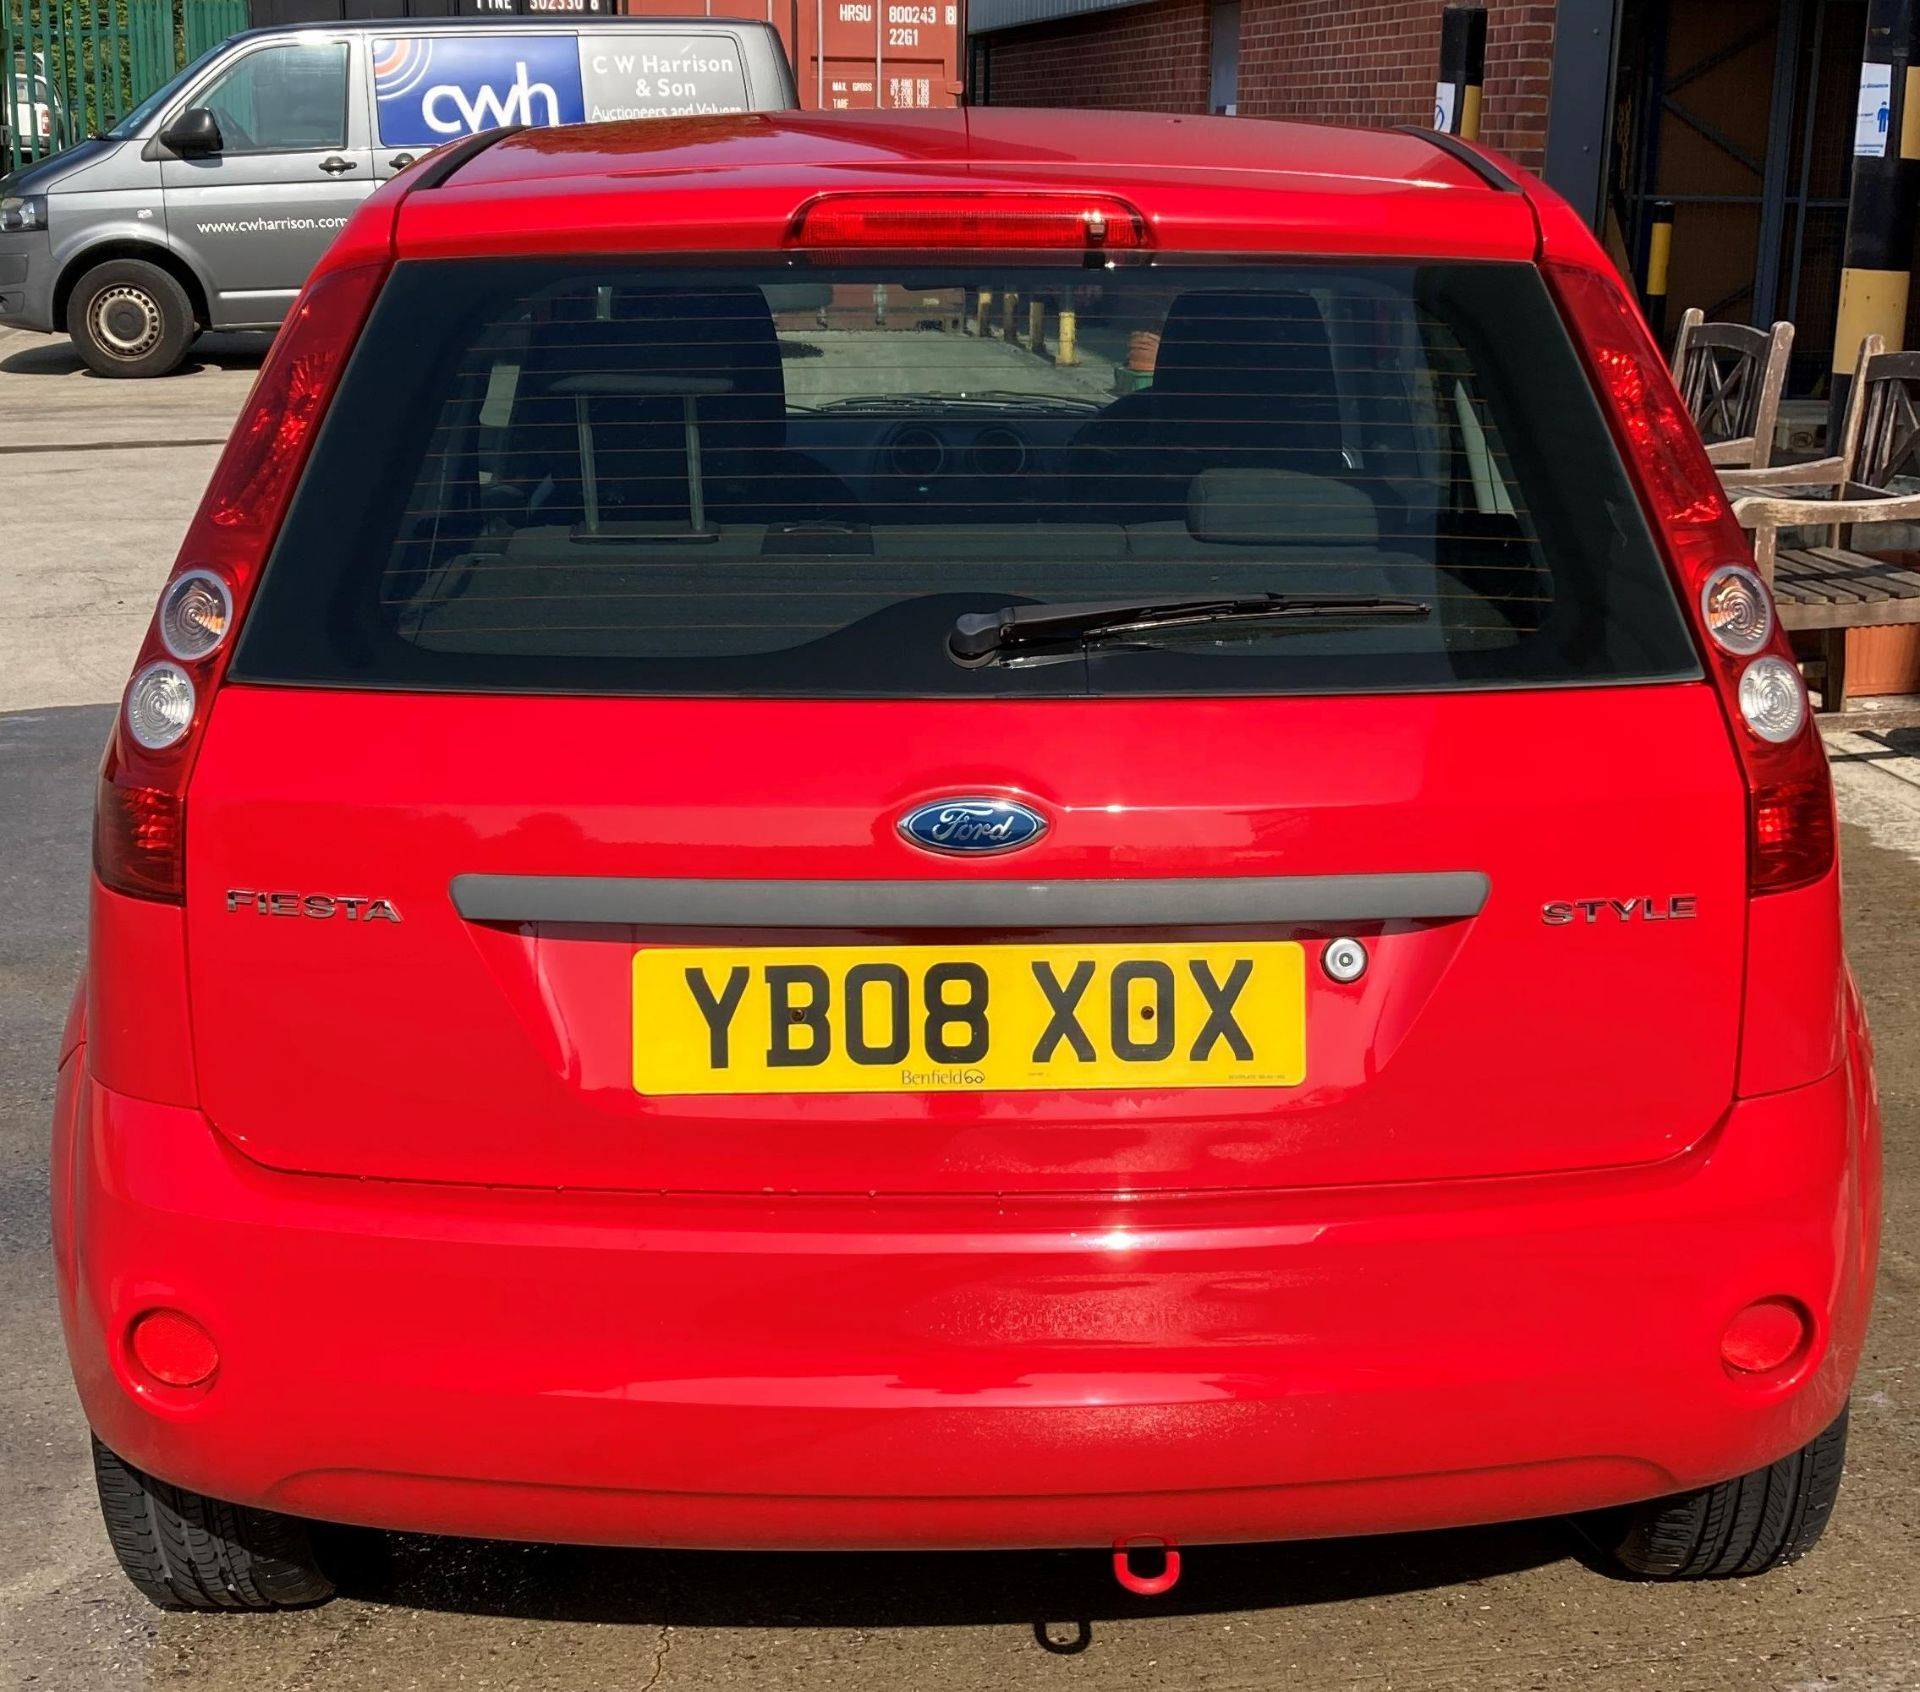 FROM A DECEASED ESTATE FORD FIESTA STYLE 1.2 3 door hatchback - petrol - red Reg No: YB08 XOX Rec. - Image 2 of 10